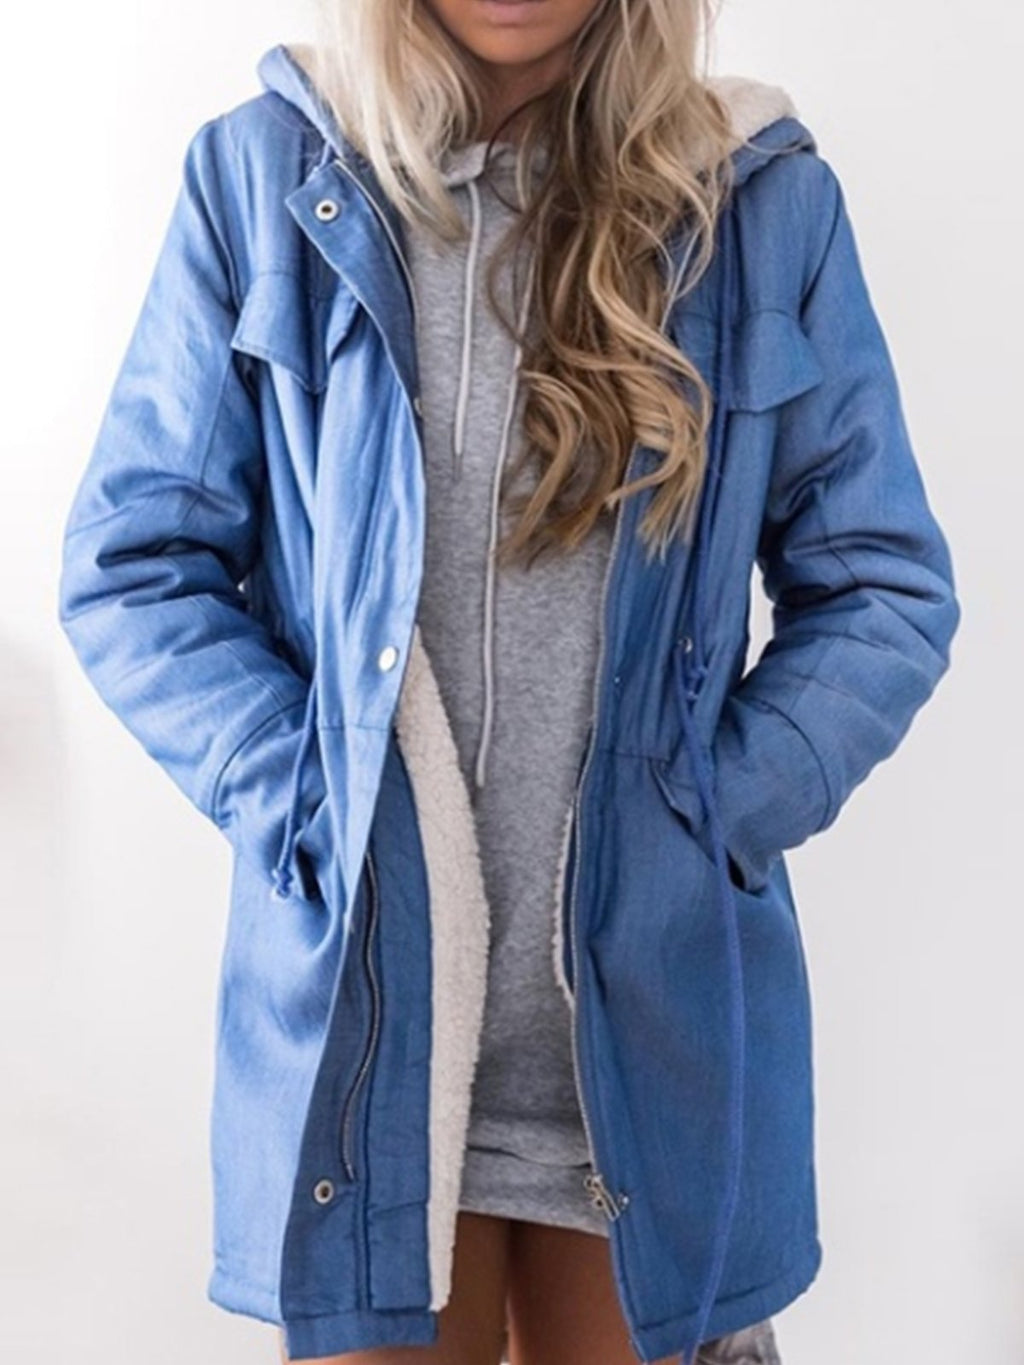 Hoodie Long Sleeve Casual Patchwork Zipper Coat